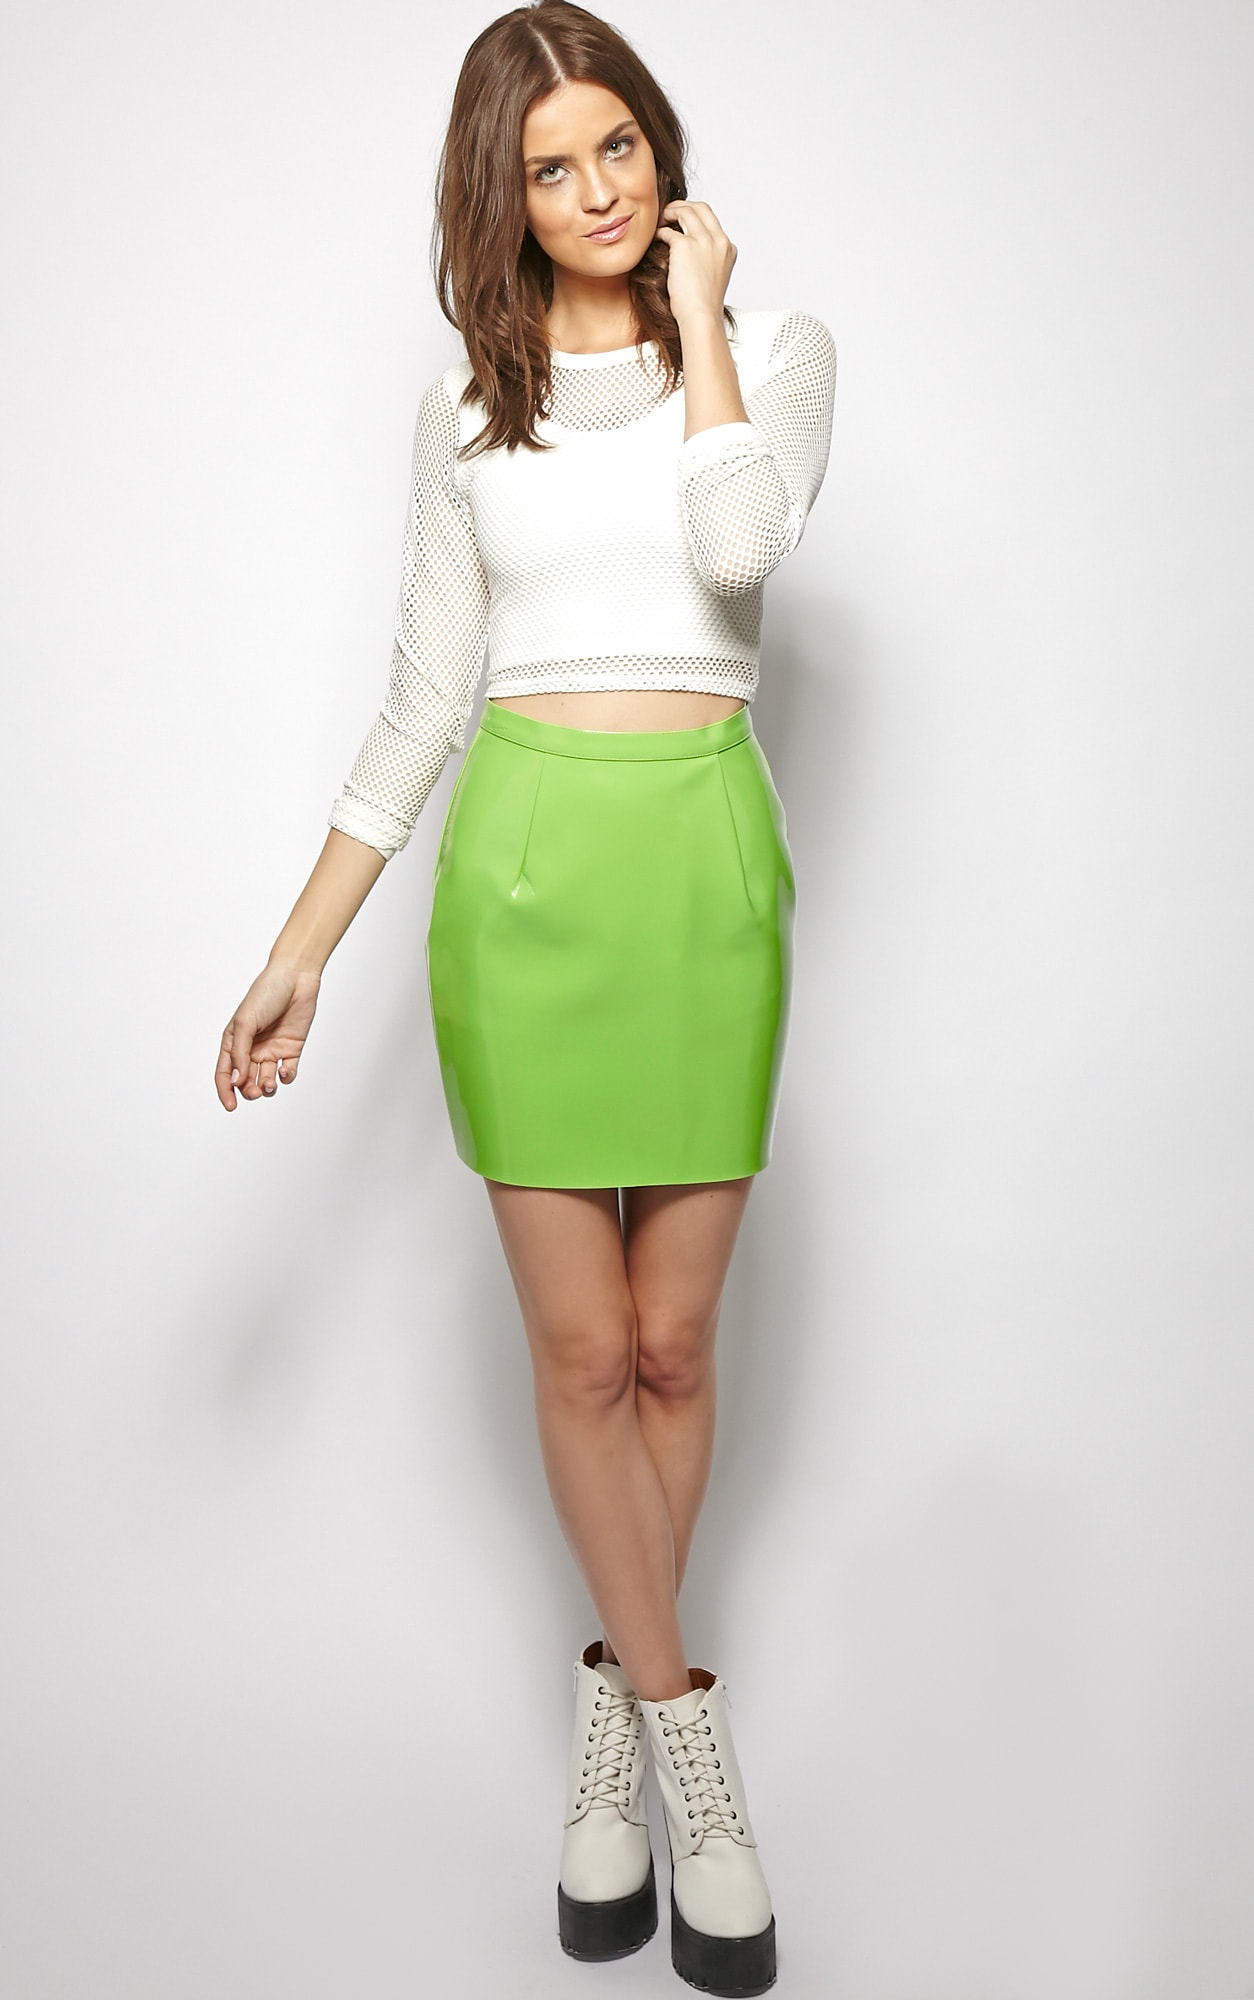 Natalya Green PVC Mini Skirt 5